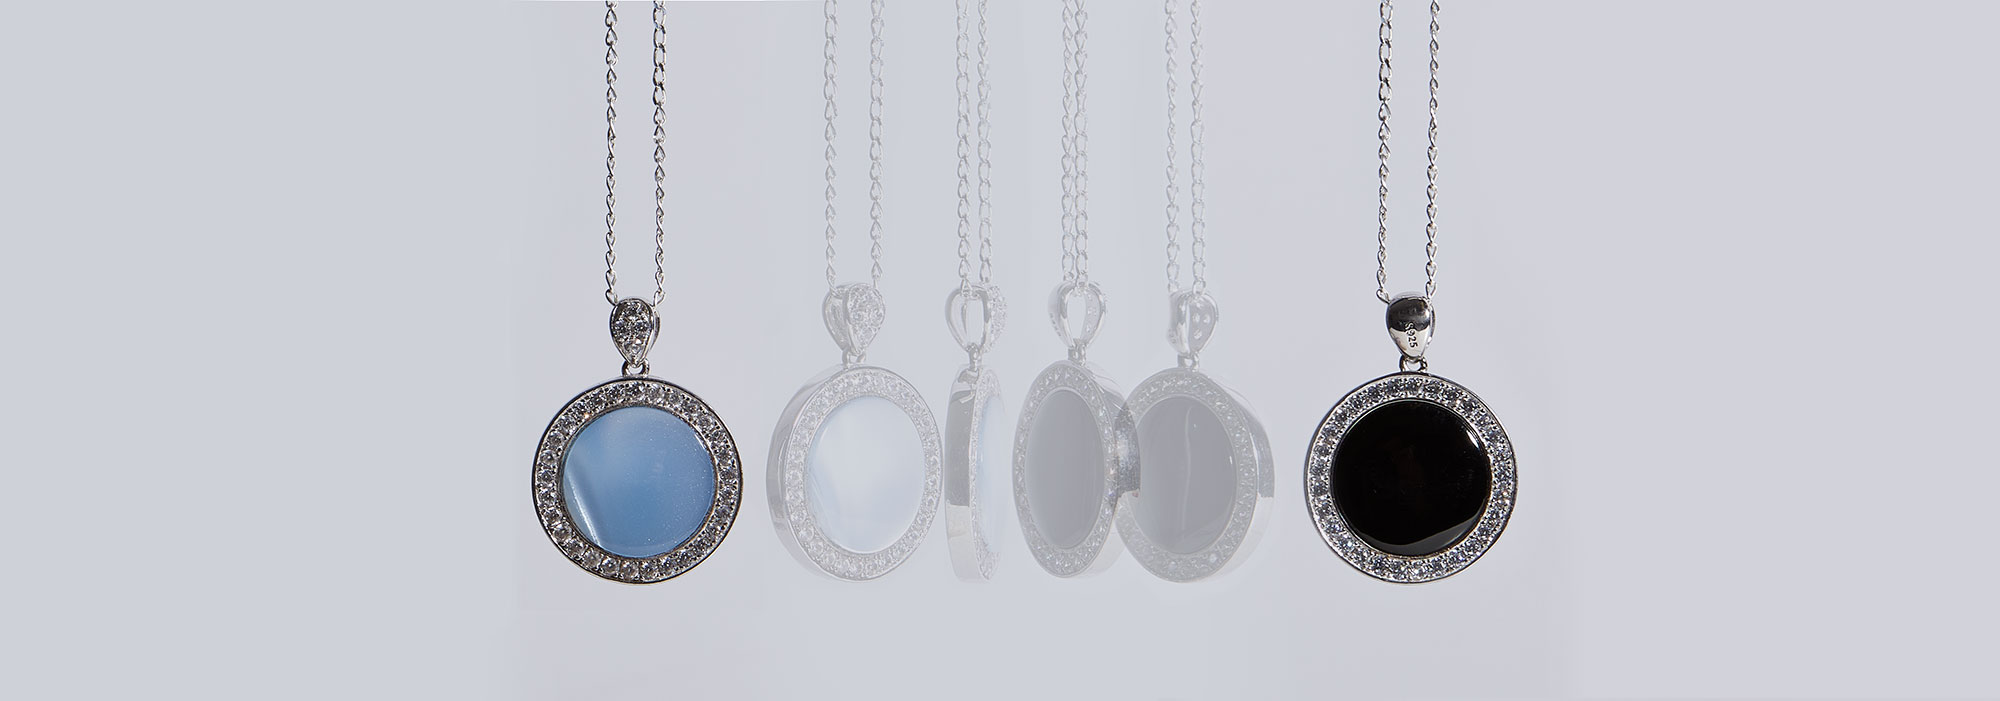 yorkshire-jewellery-co-double-side-banner.jpg